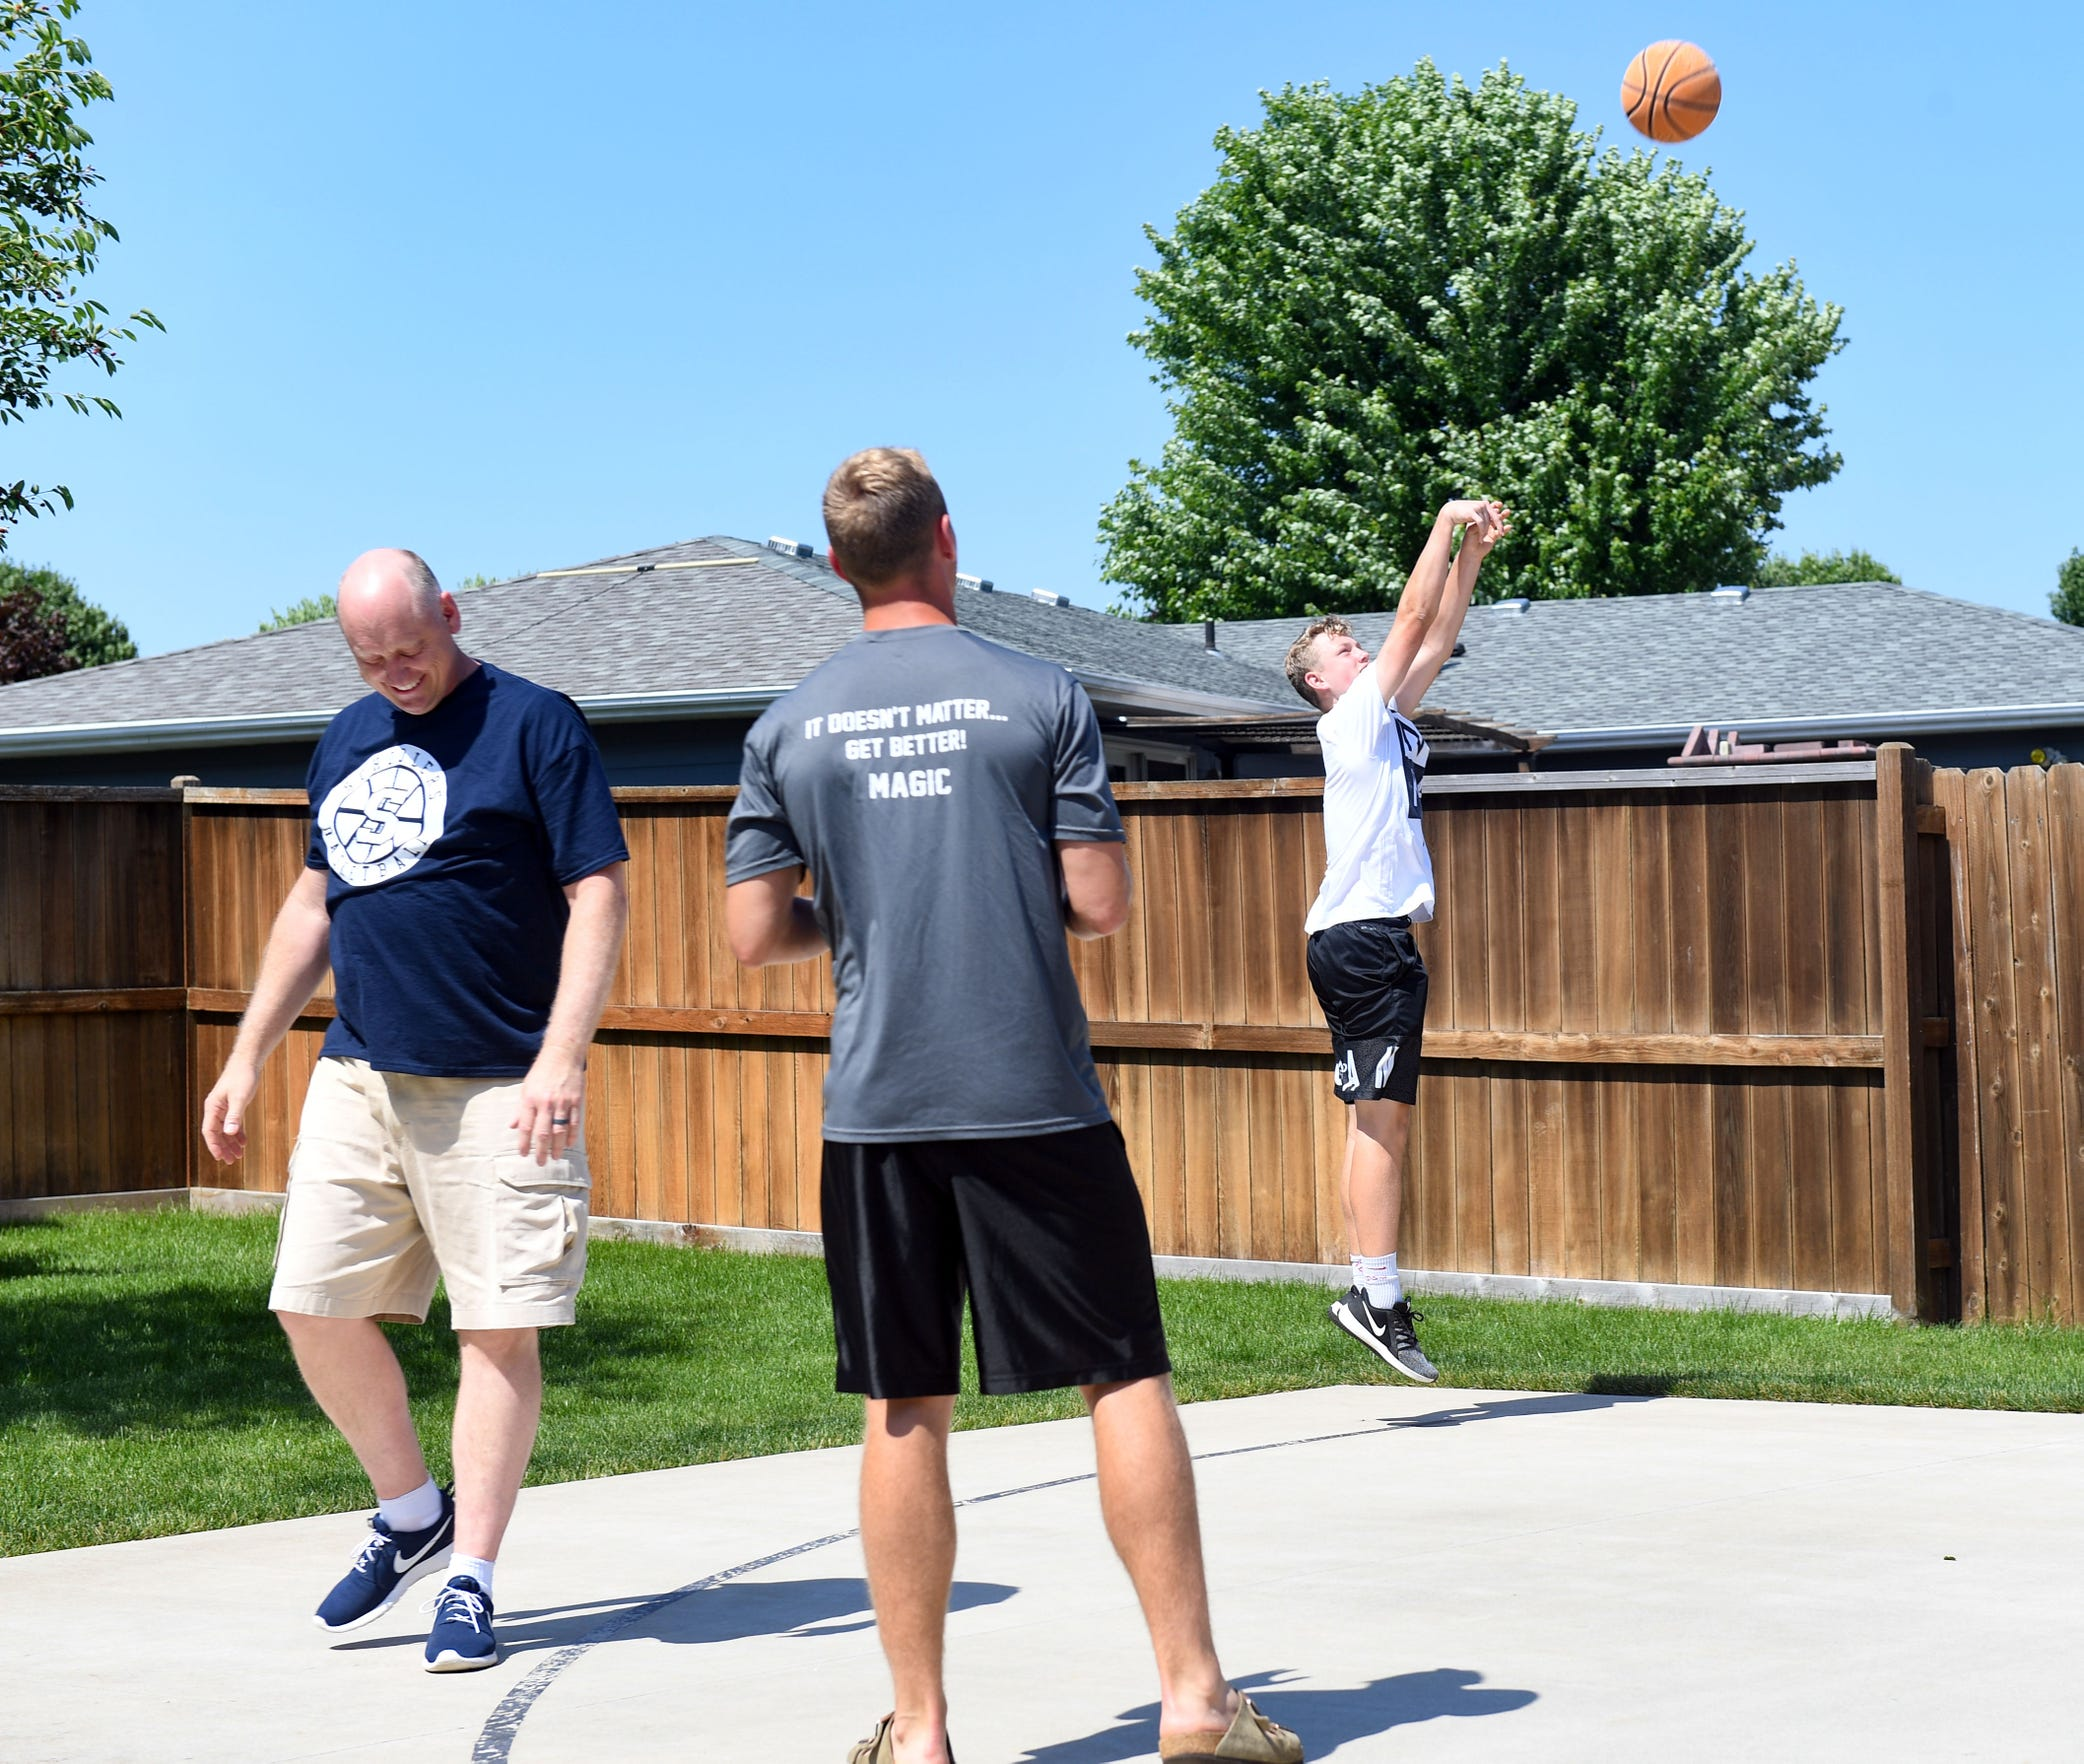 Joe Uttecht shoots a basketball during a game with his father, Dale, and older brother, Logan, on Thursday, June 27, at their home in Sioux Falls.